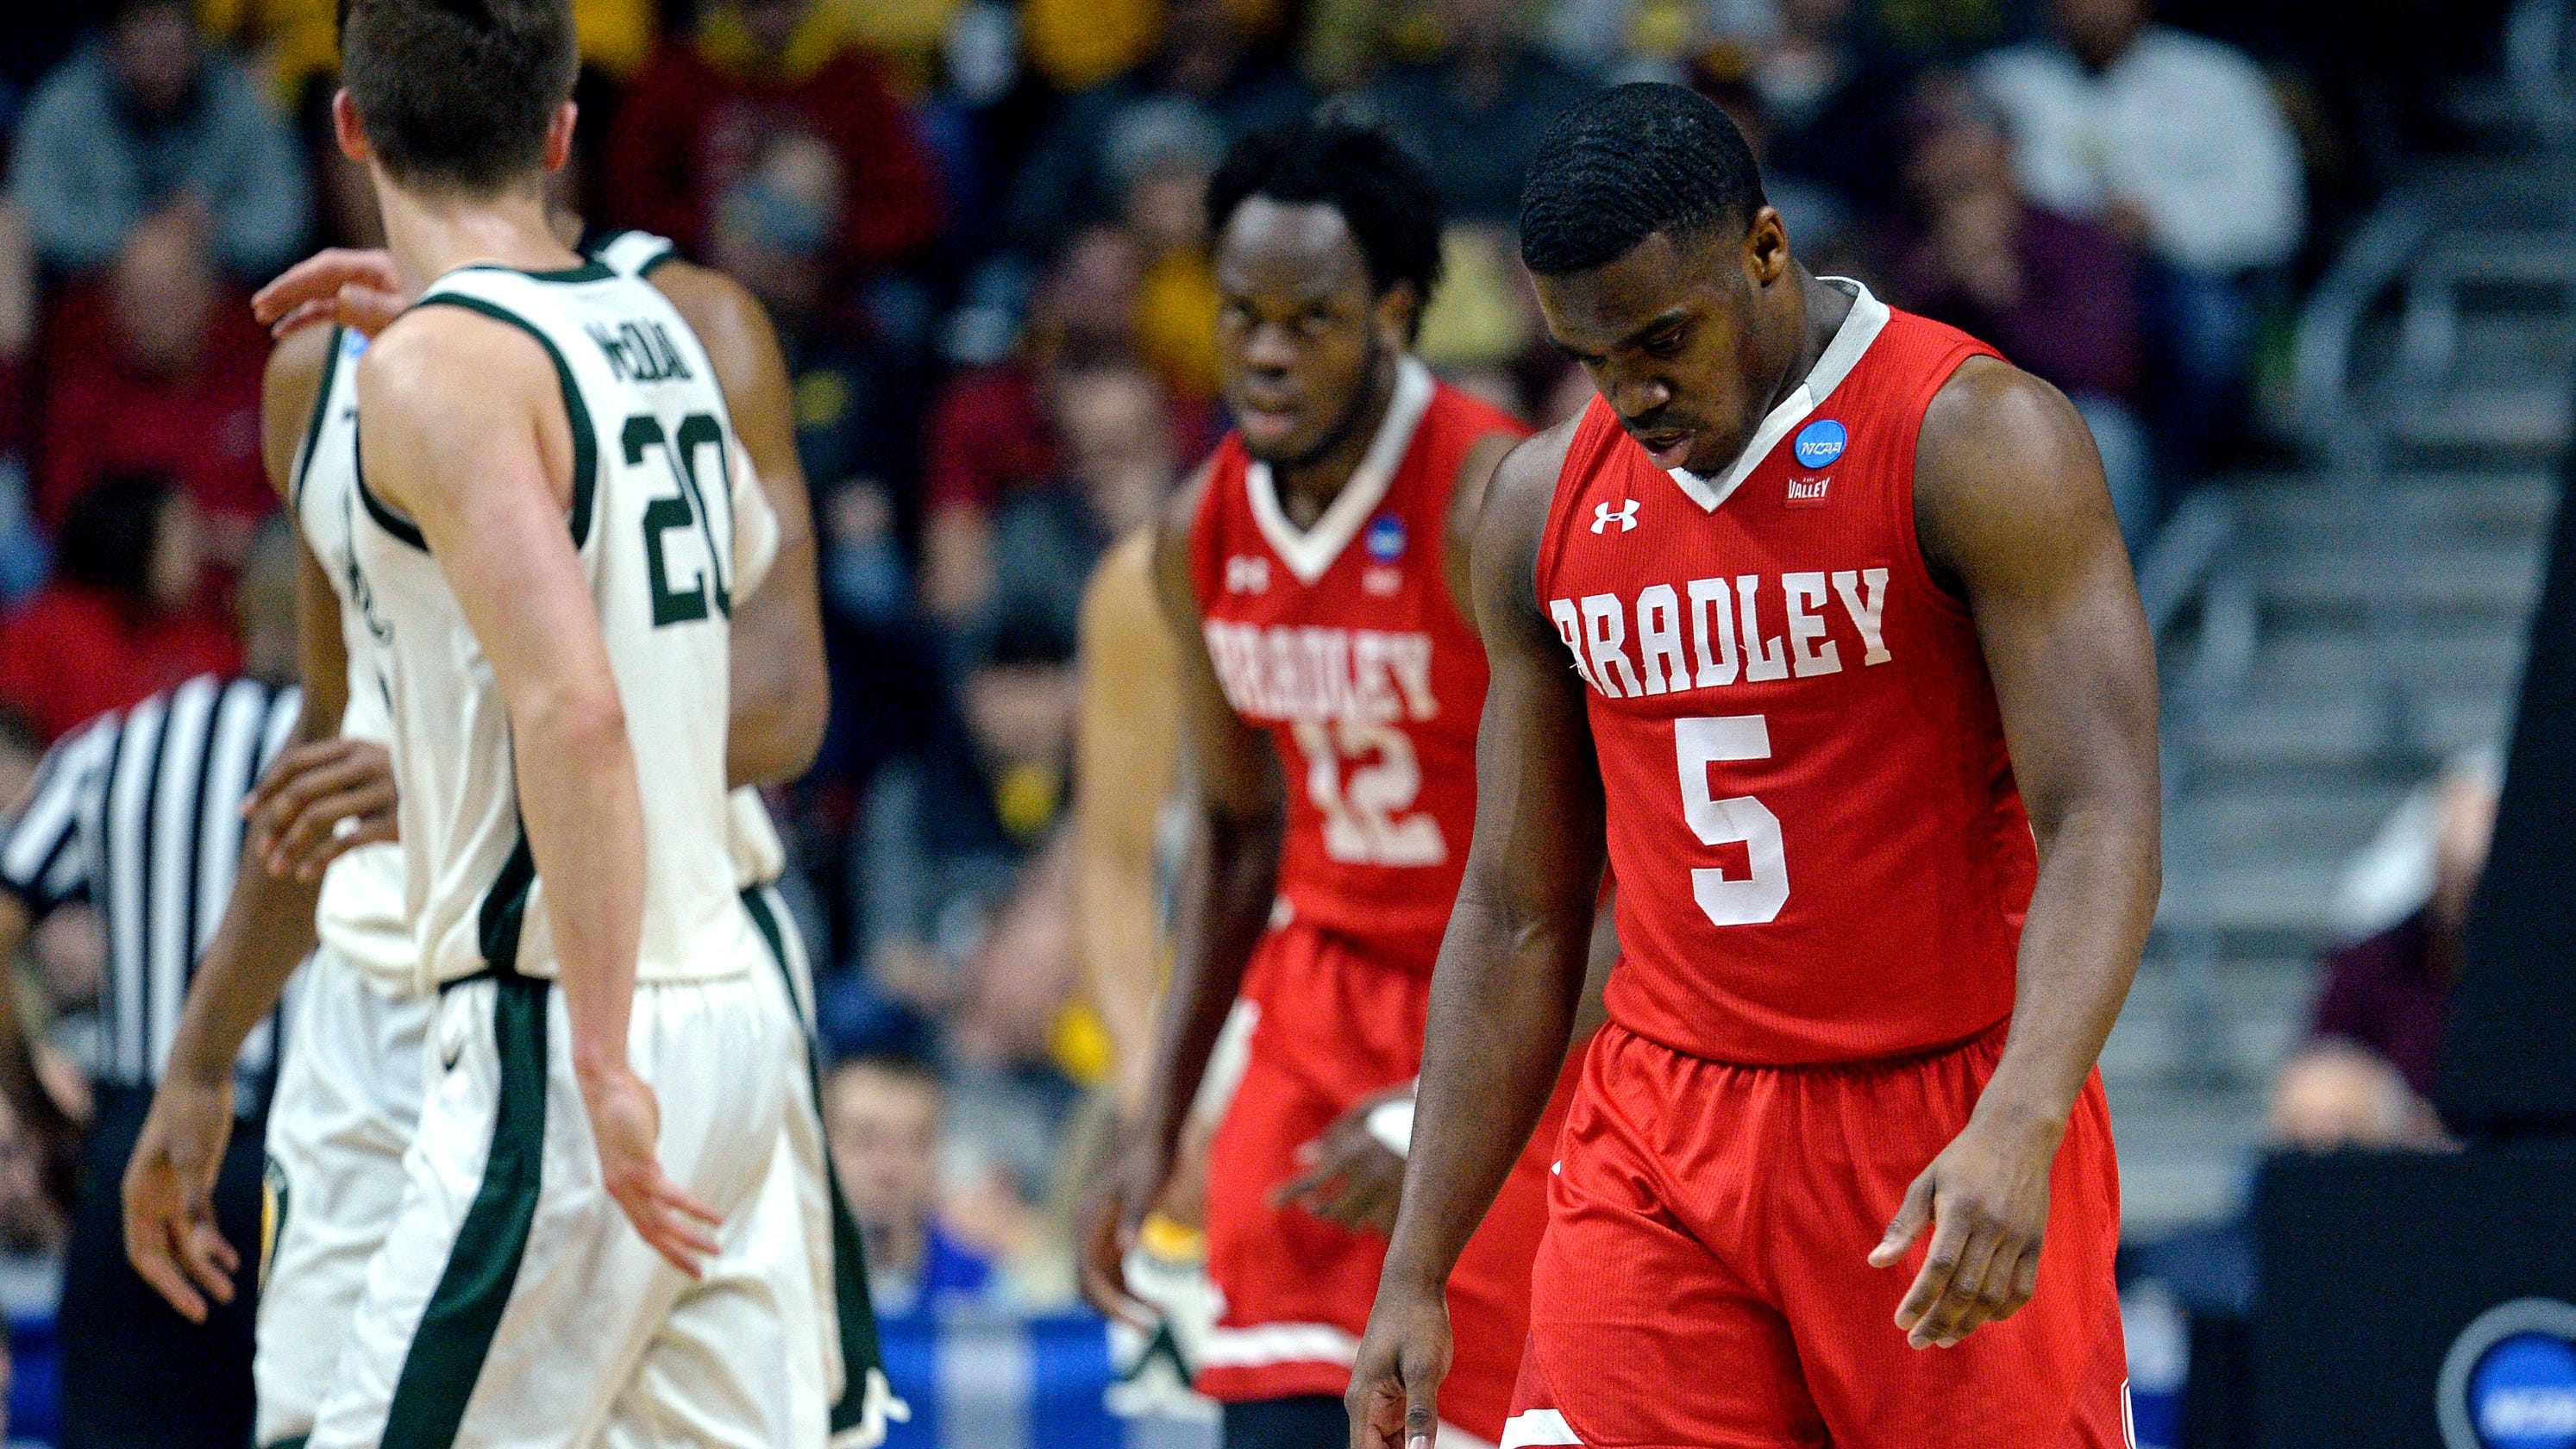 March almost Madness: Cinderella mid-majors whiff in near-upsets of NCAA tourney top seeds